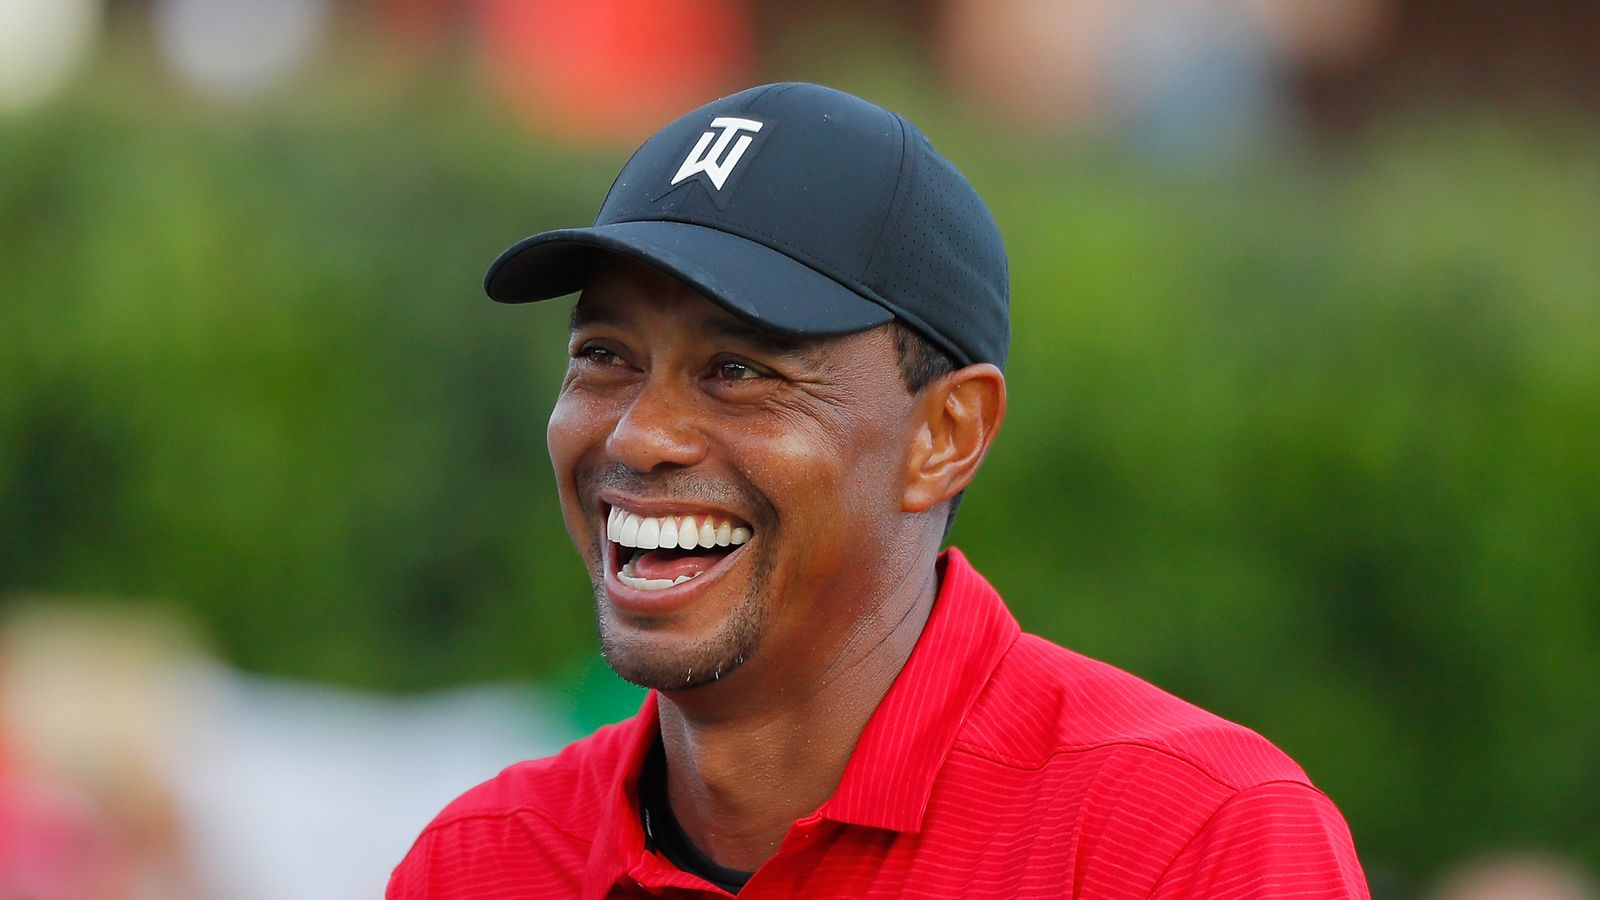 Tiger Woods fights back tears as he wins first tournament in five years